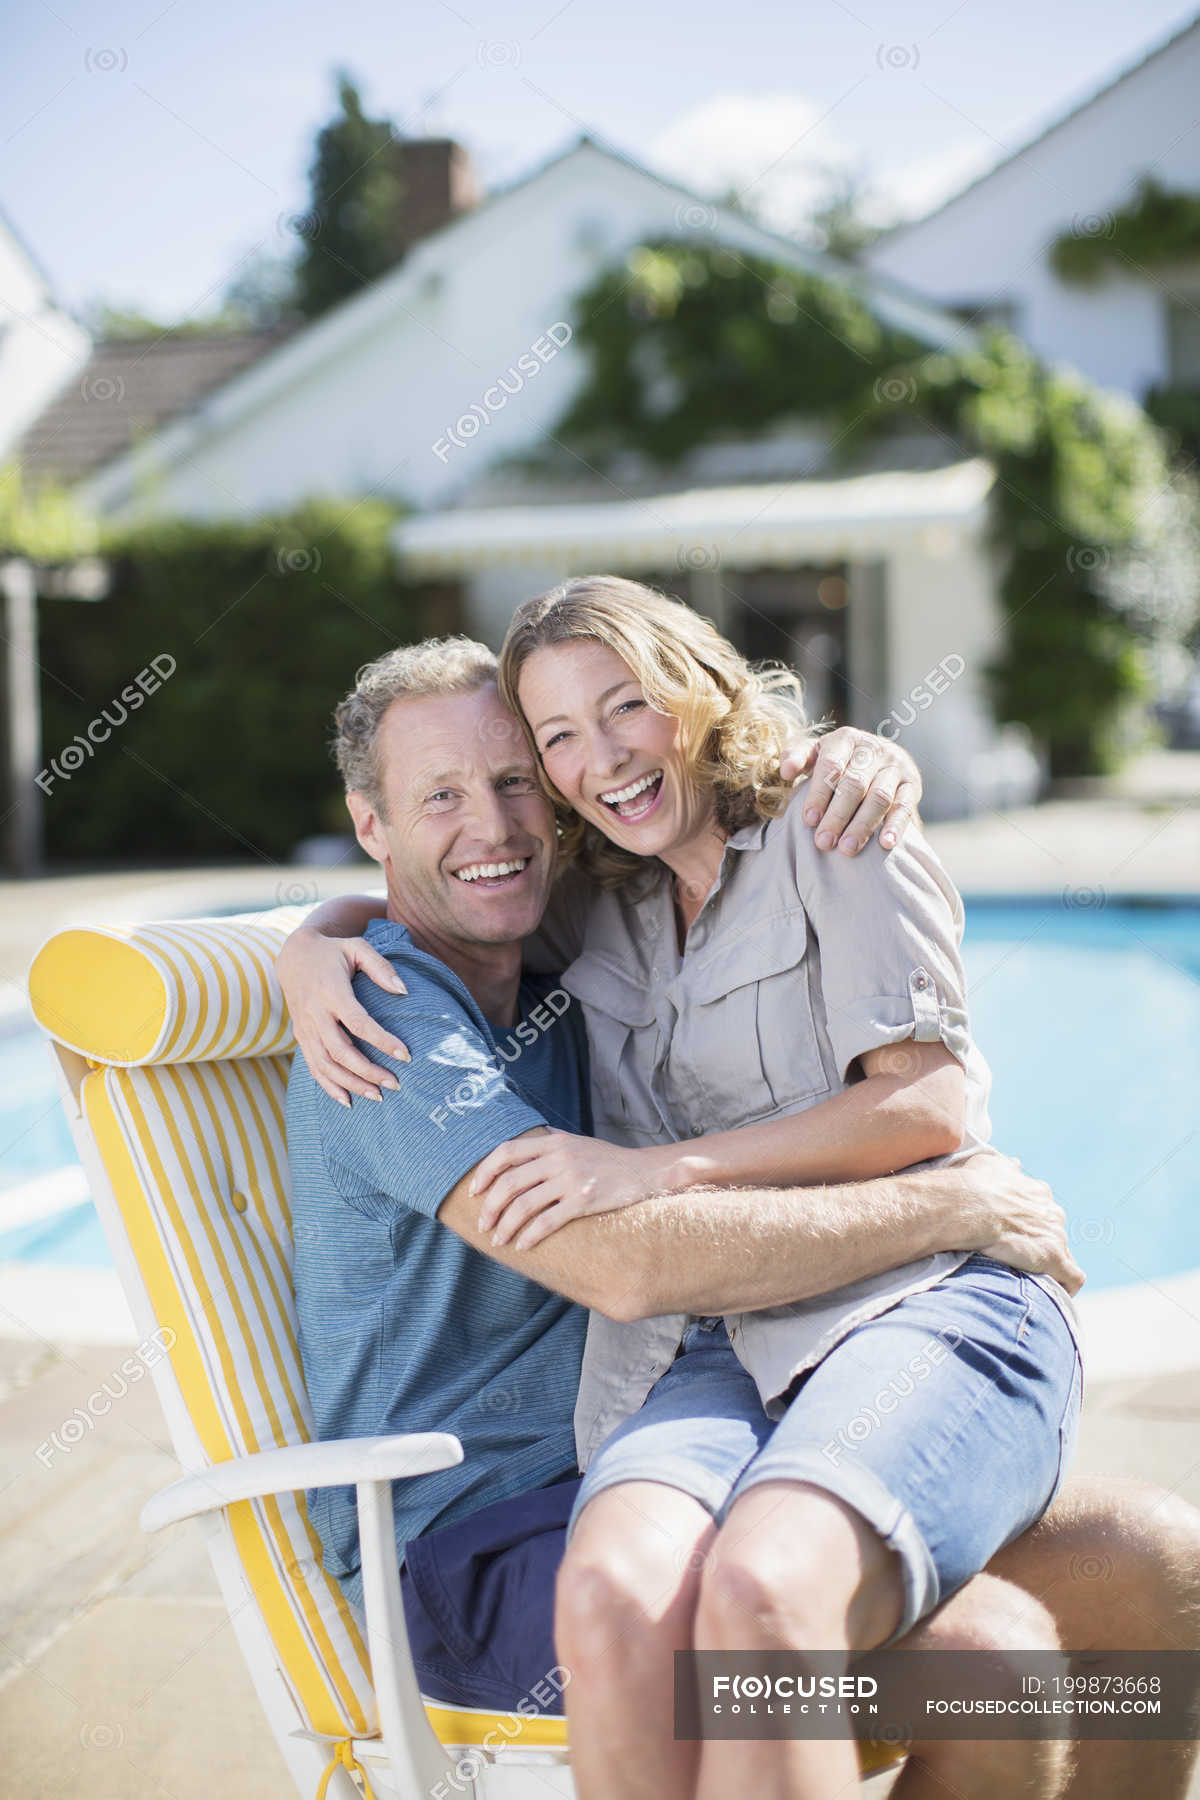 sc 1 st  Focused Collection & Couple sitting in lounge chair at poolside u2014 Stock Photo | #199873668